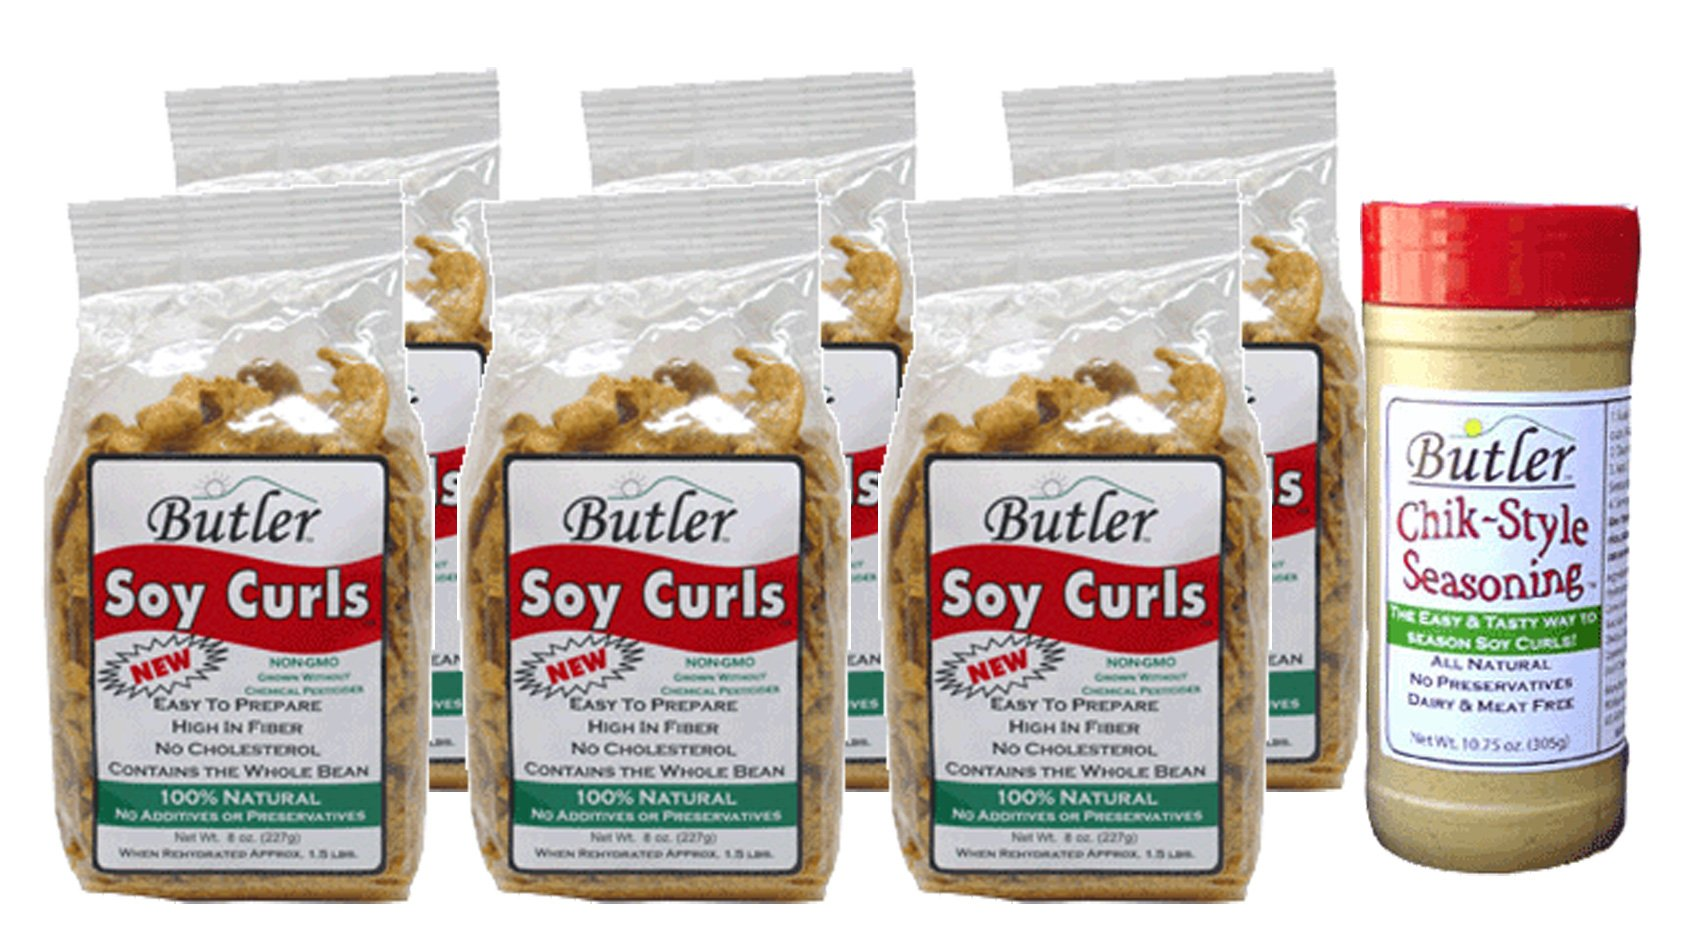 Butler Soy Curls, 8 oz bags - 6 Pack + Chik-Style Seasoning by Butler Foods